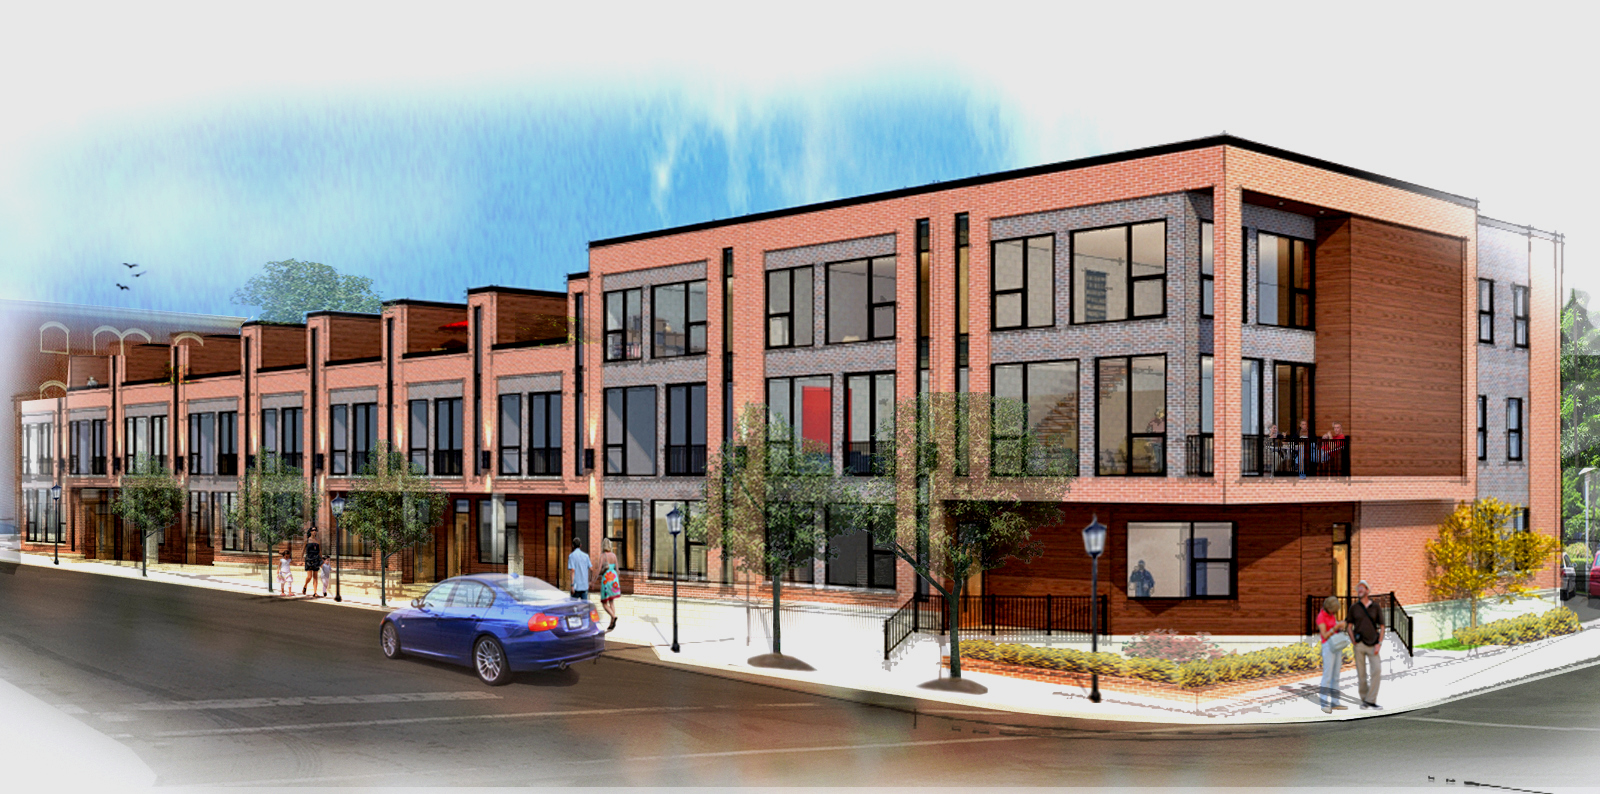 Coming soon, modern living in Northville, Michigan. 10 new residential units.